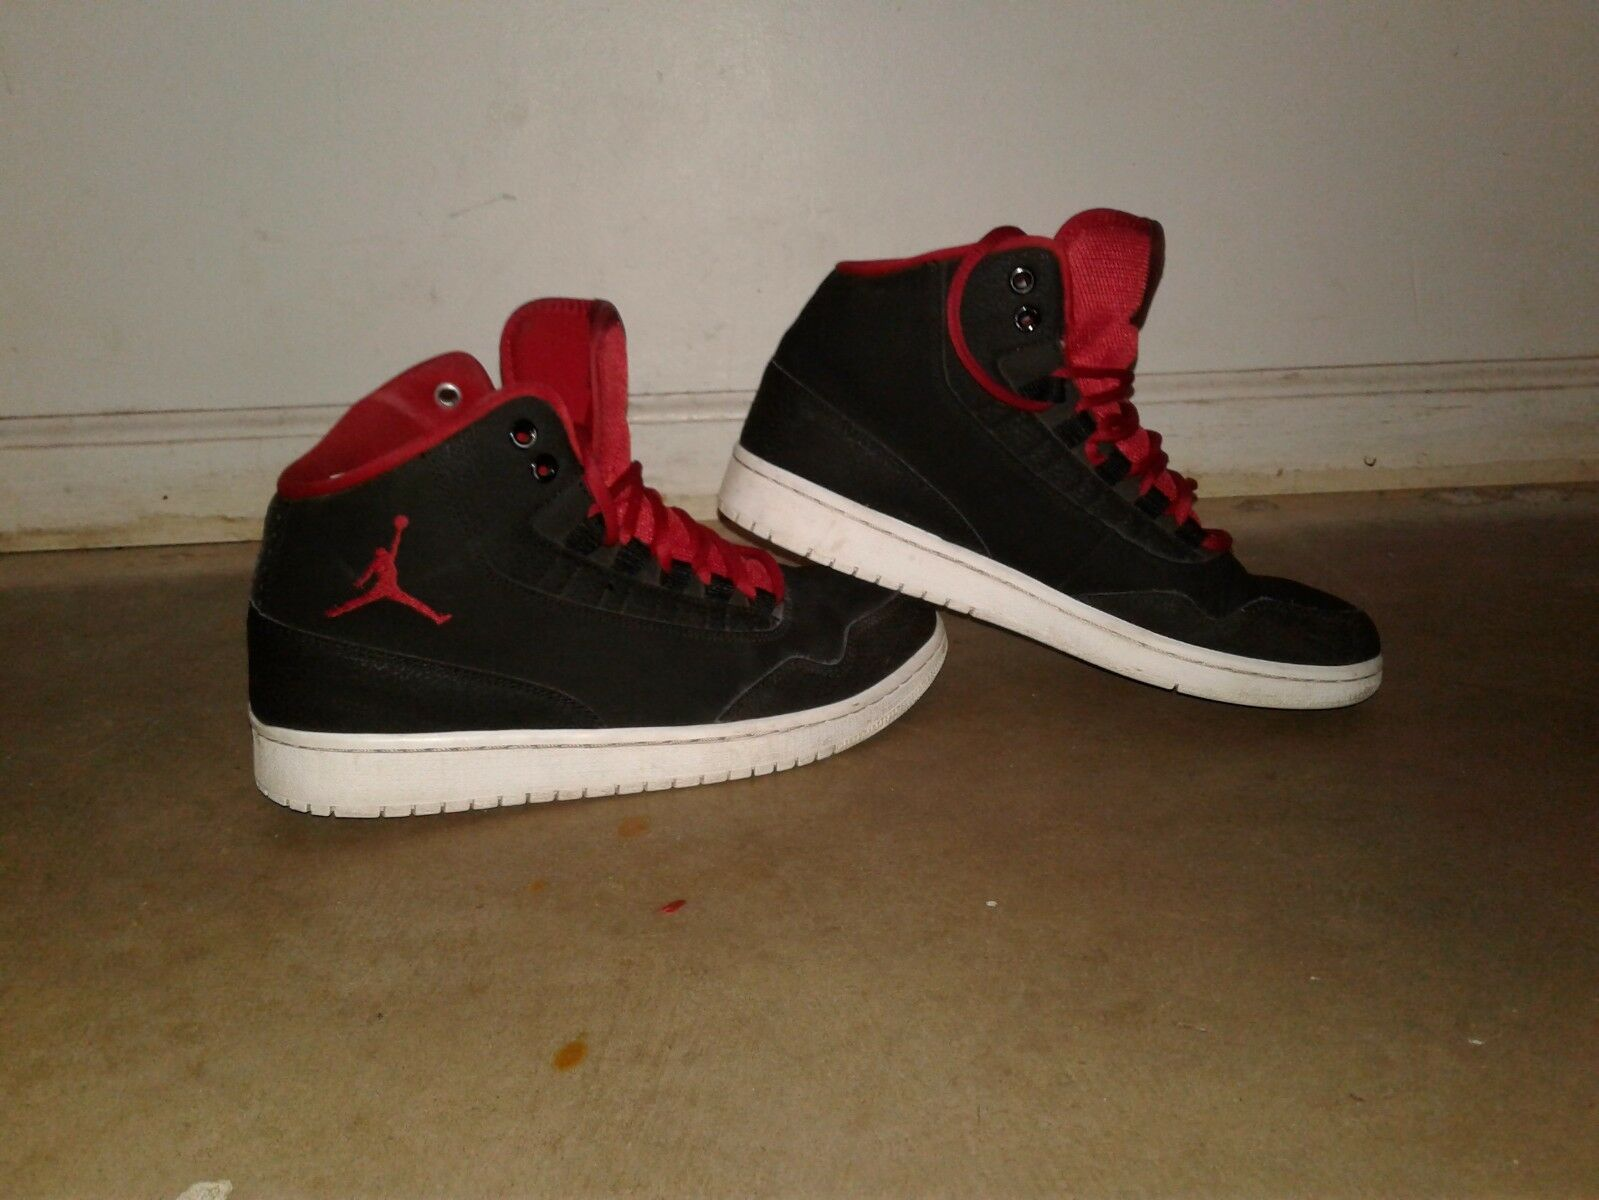 mens jordan shoes red and black size 8.5 The latest discount shoes for men and women